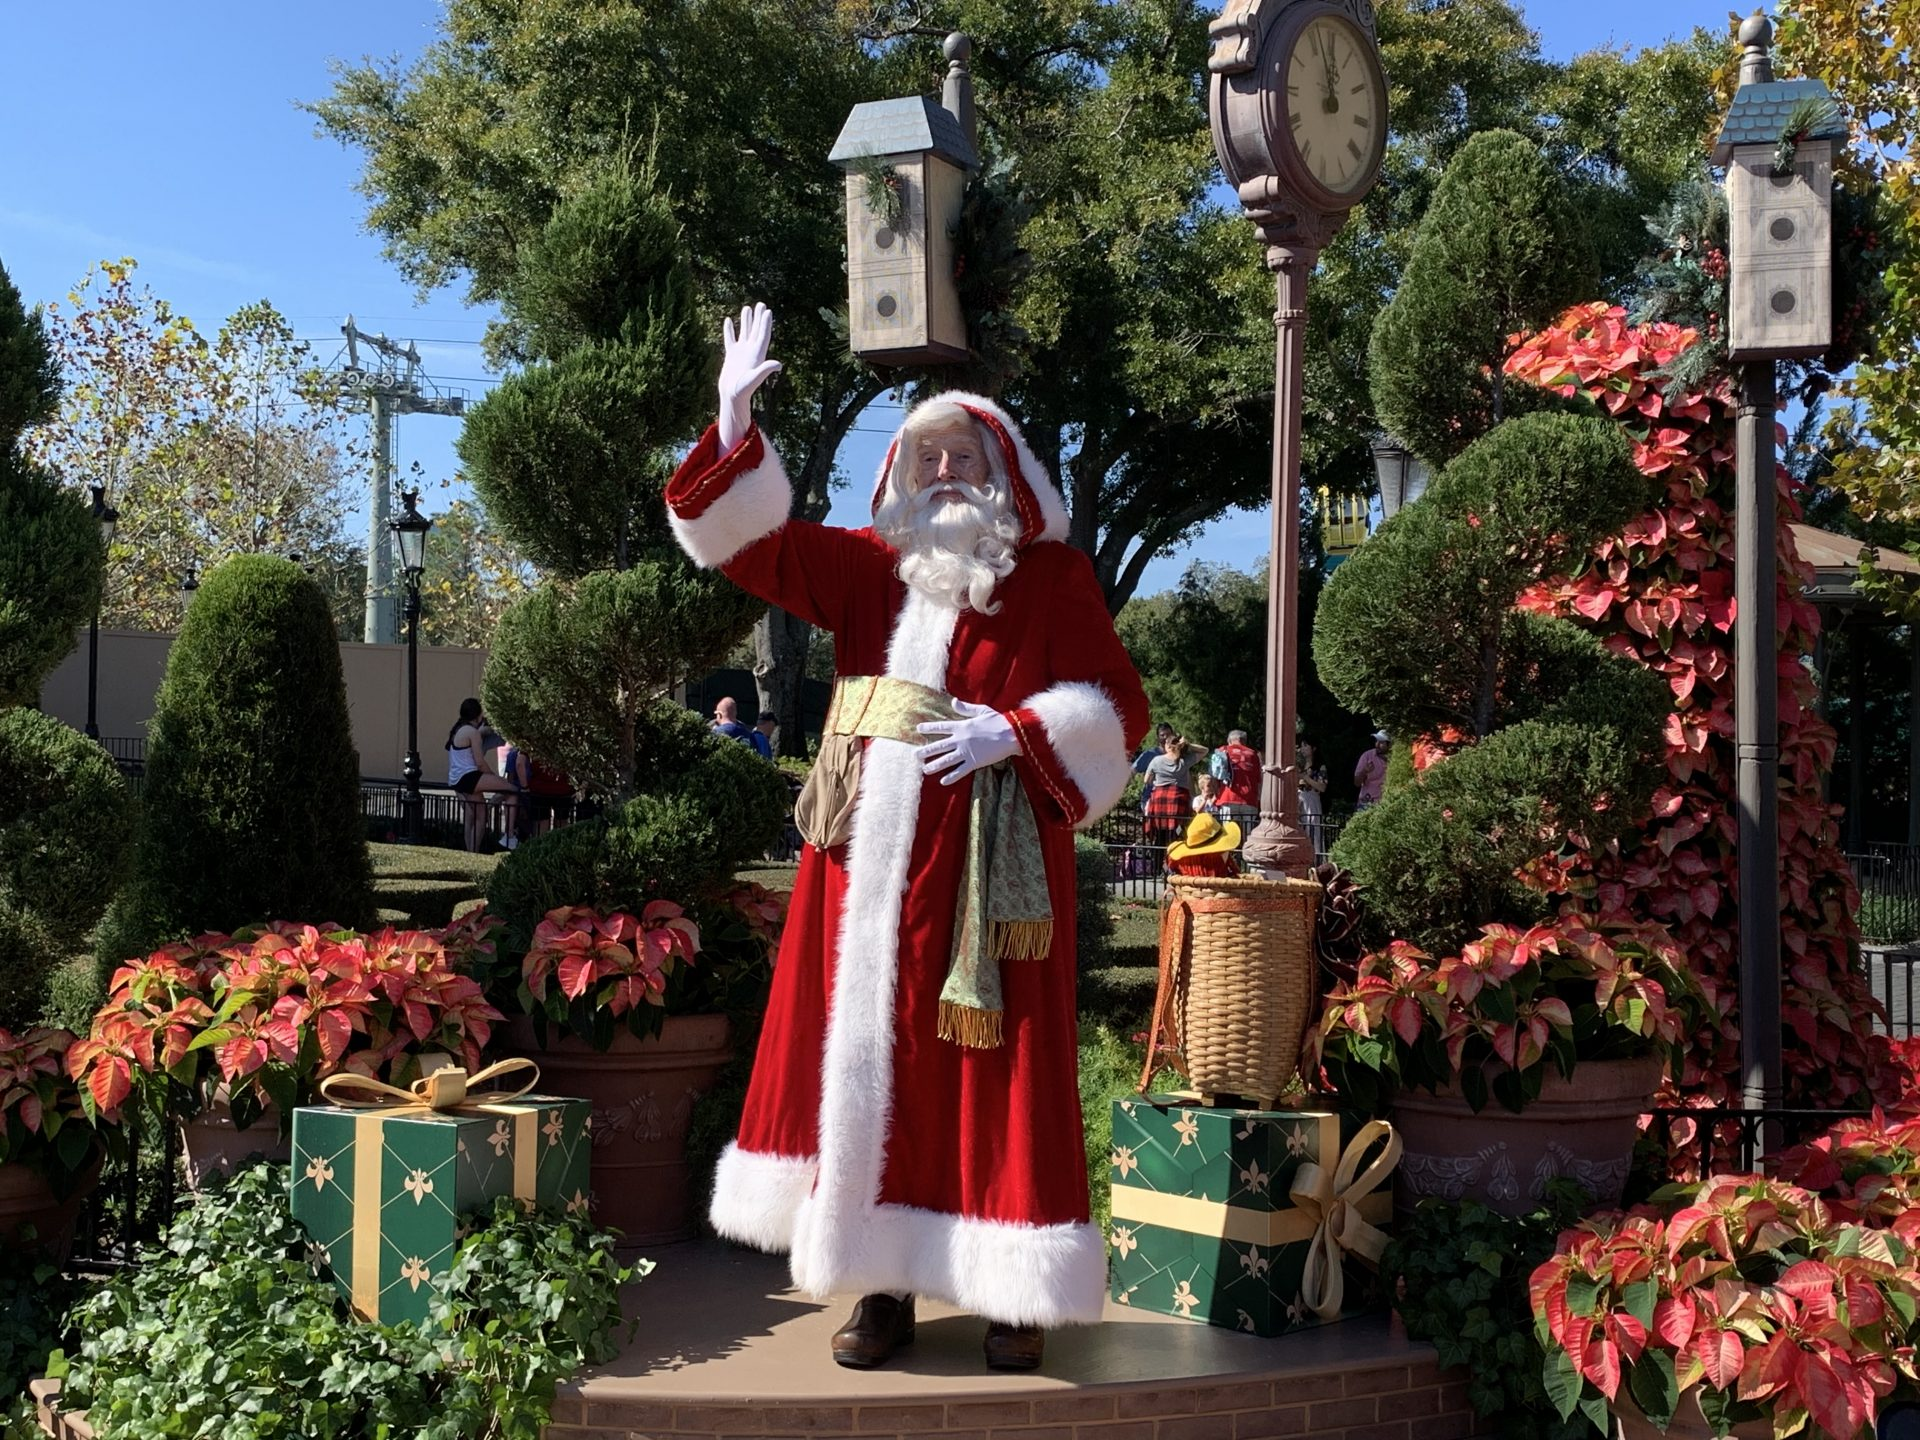 Have you gone to Epcot's Festival of the Holidays? Each country is decked out with festive decorations and they offer a slew of special seasonal treats.